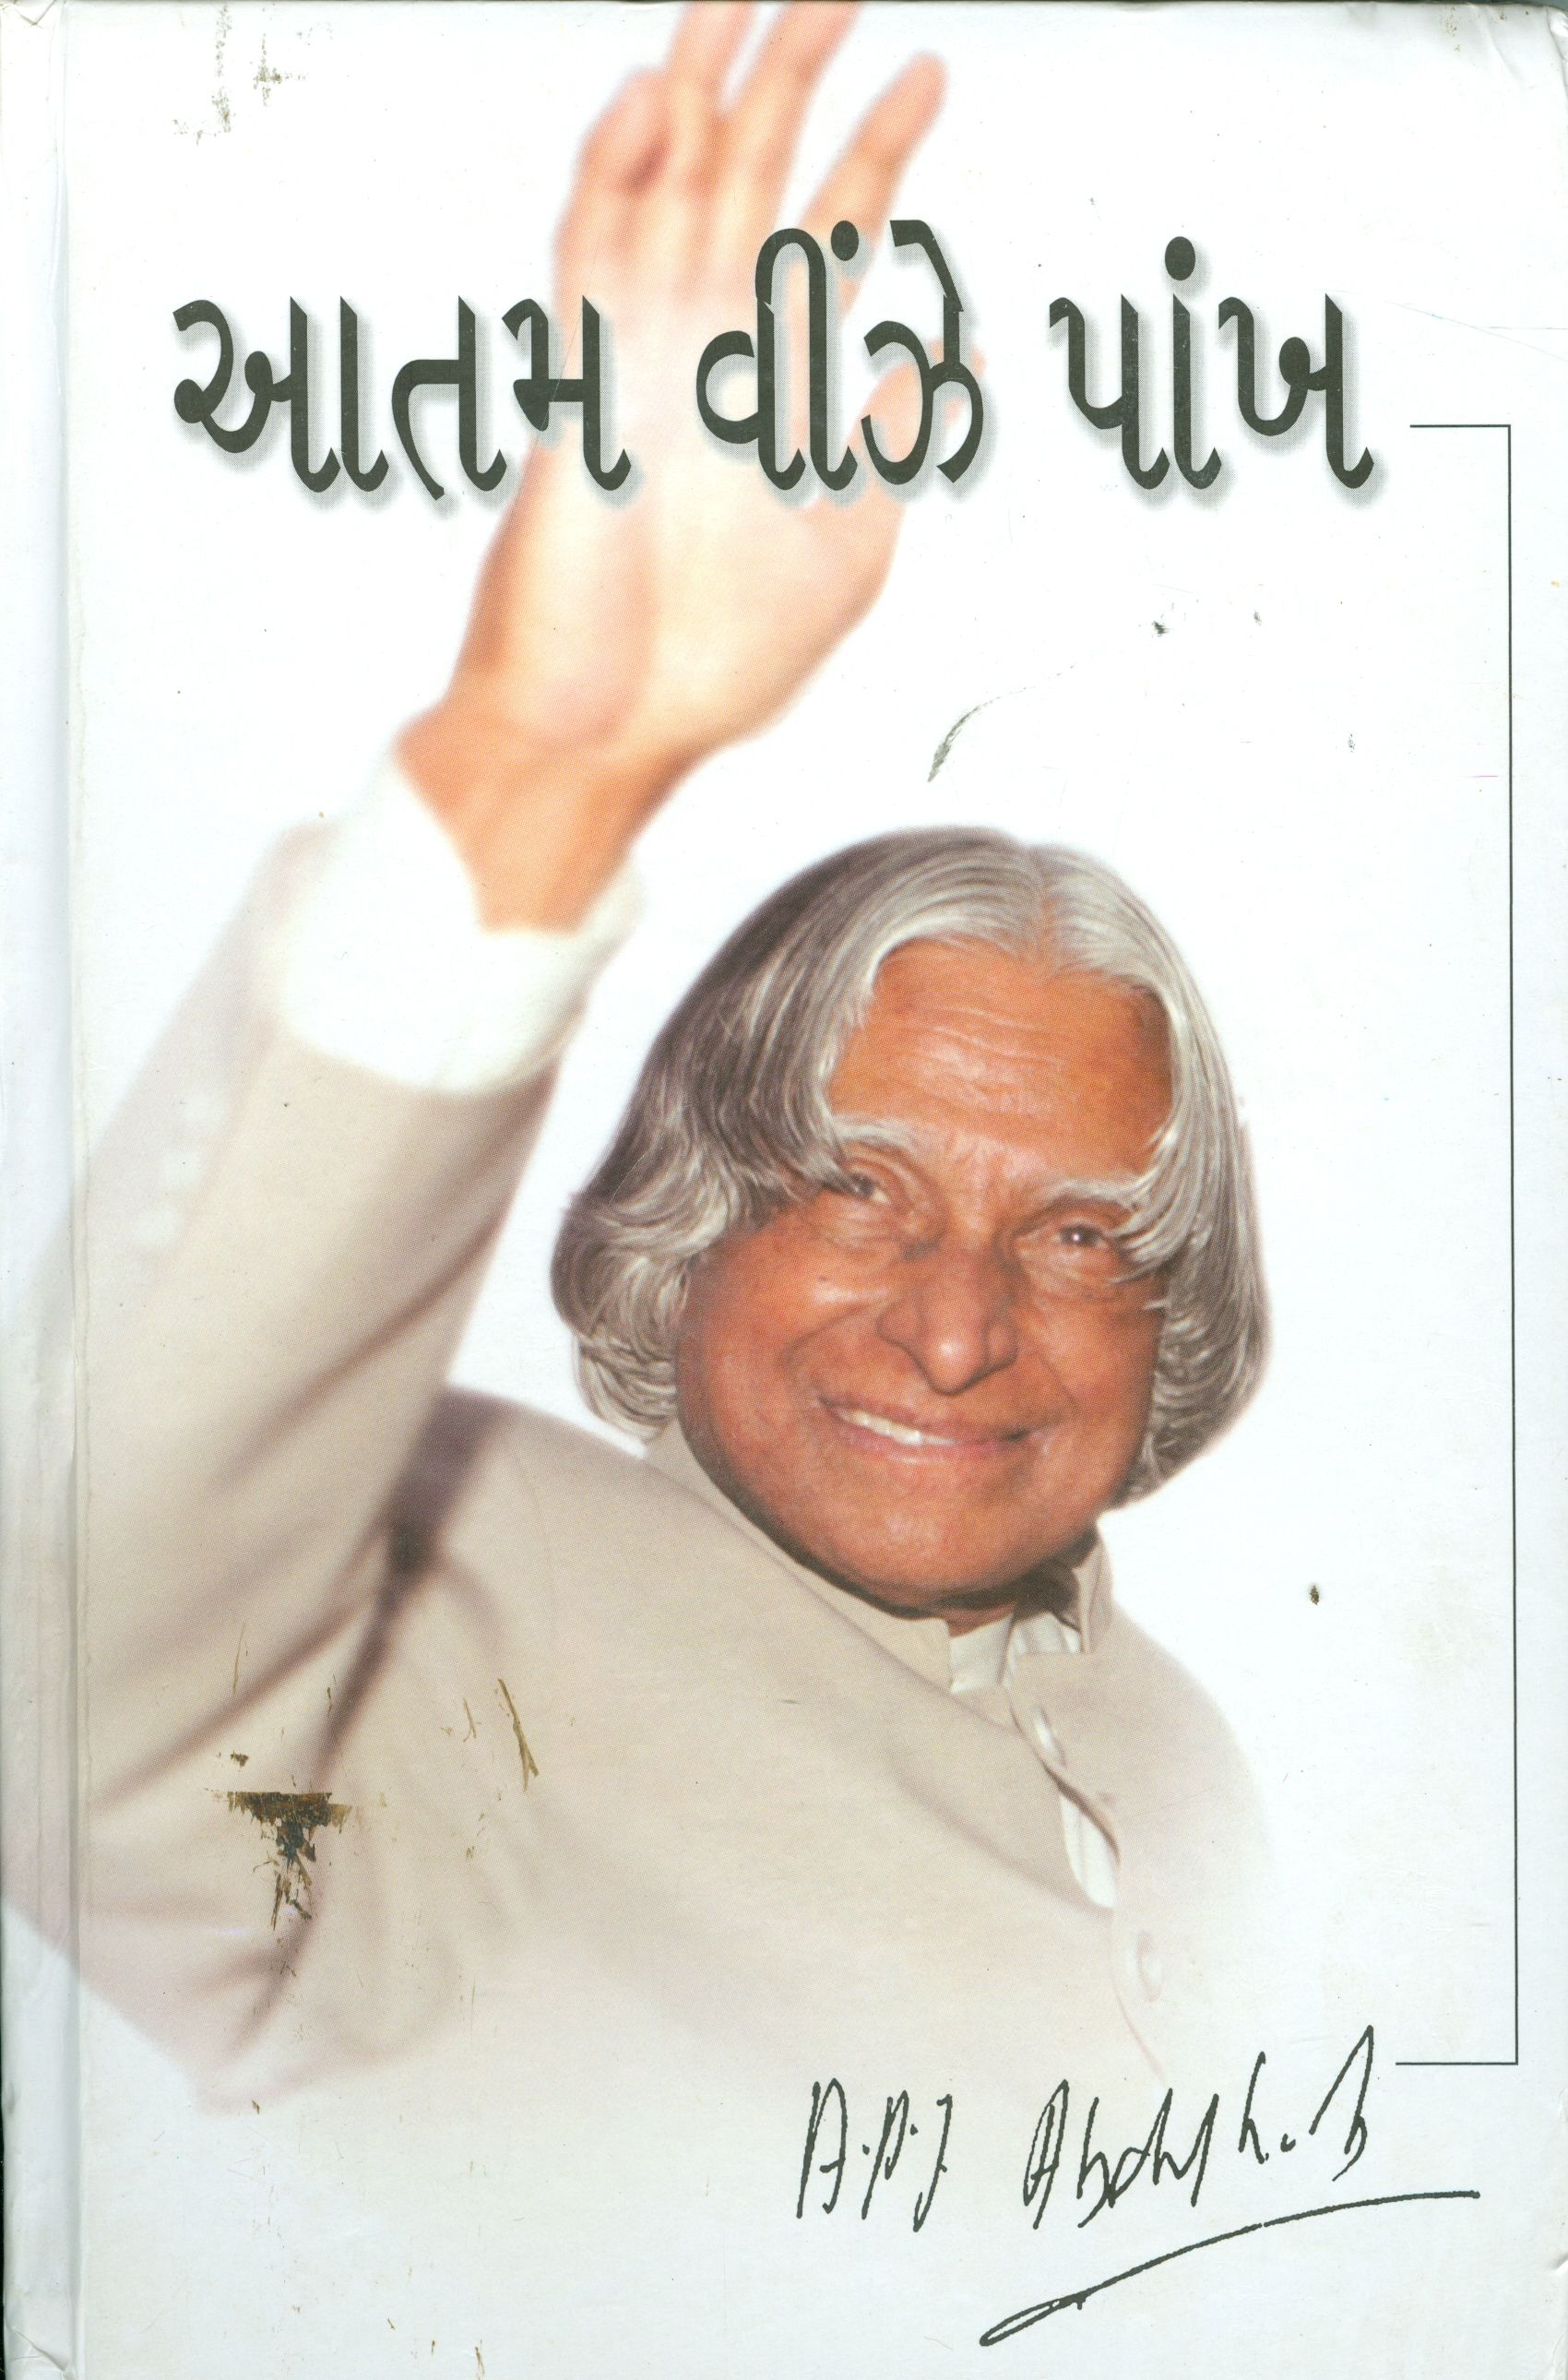 atam vinze paankh by apj abdul kalam this book is essay type dr atam vinze paankh by apj abdul kalam this book is essay type